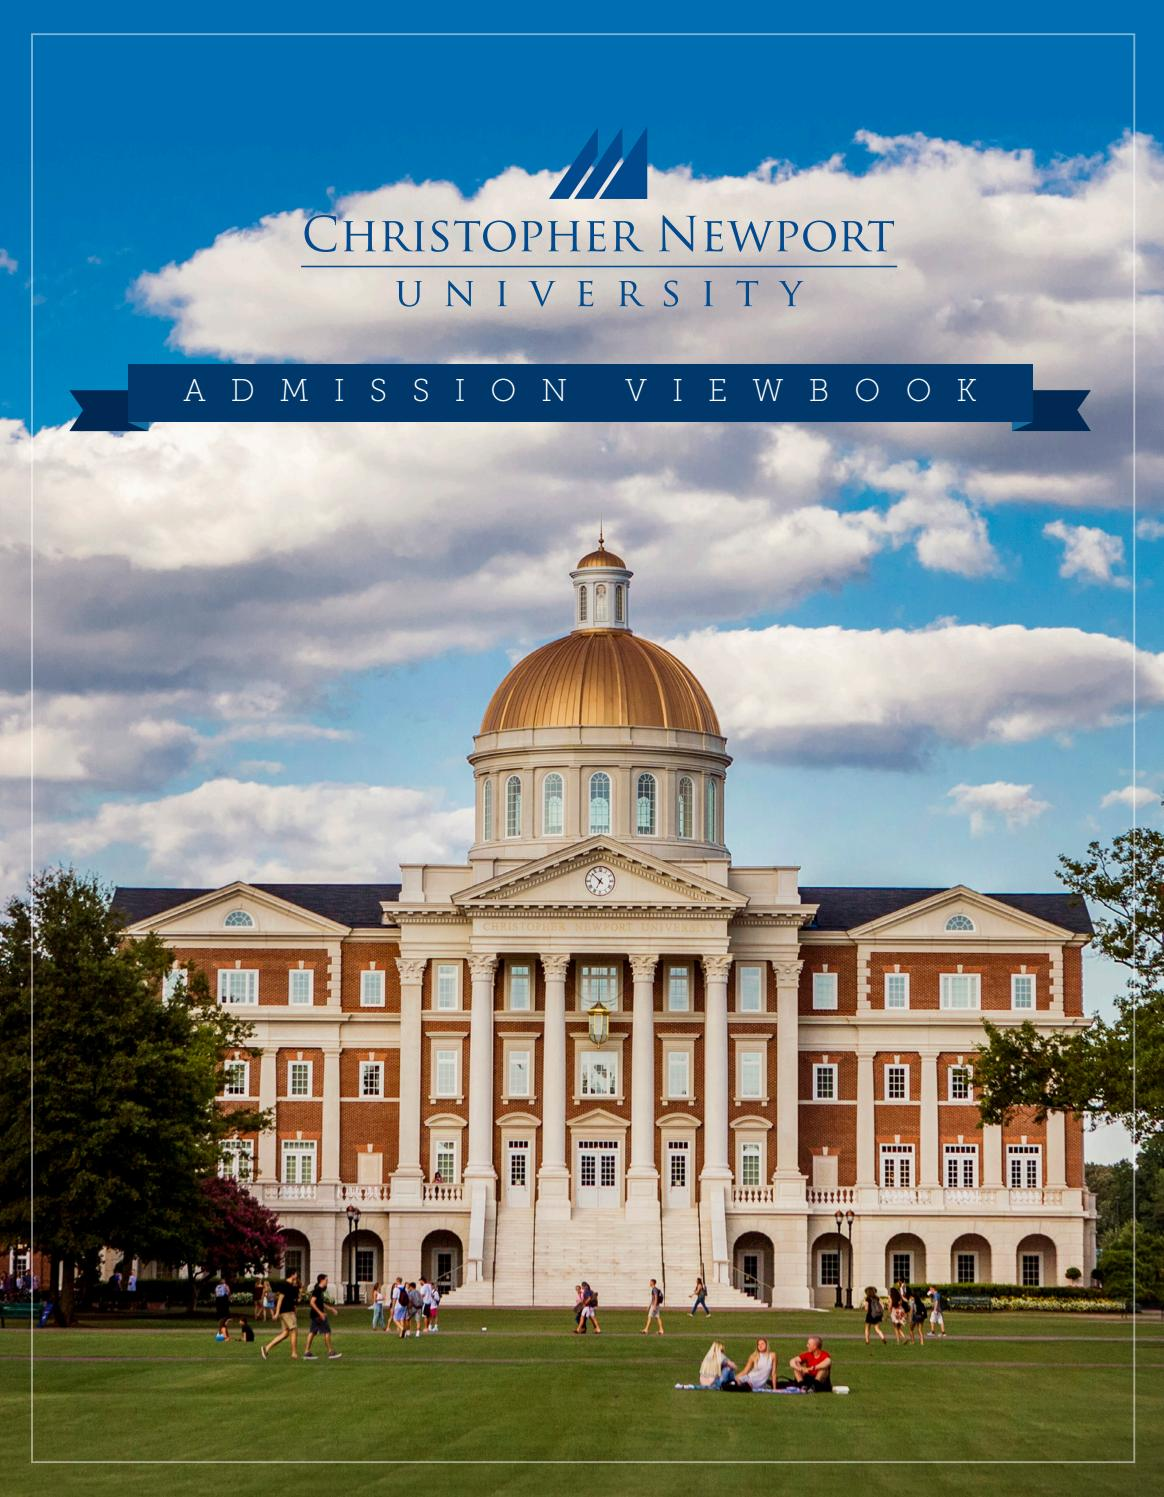 008 Christopher Newport University Application Essay Example Page 1 Unusual Full